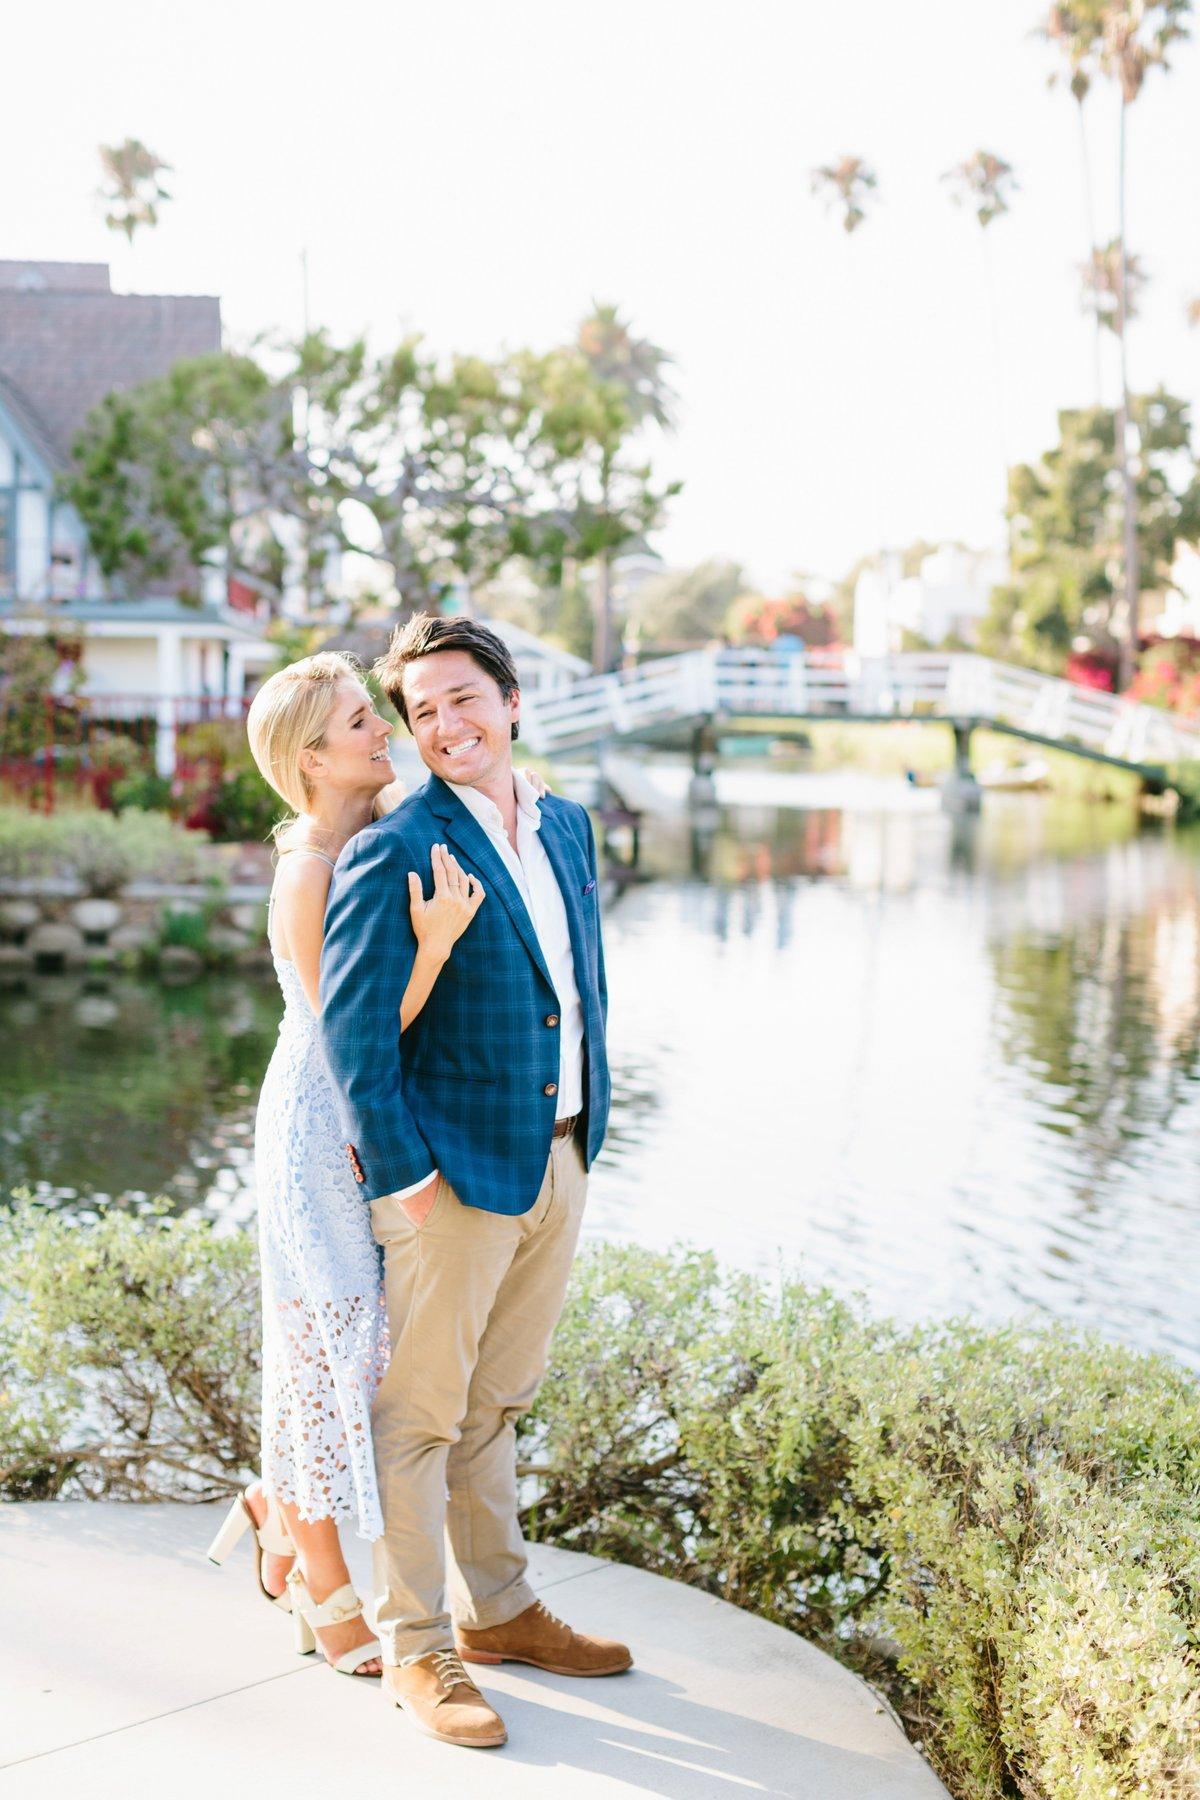 Best California Engagement Photographer-Jodee Debes Photography-224